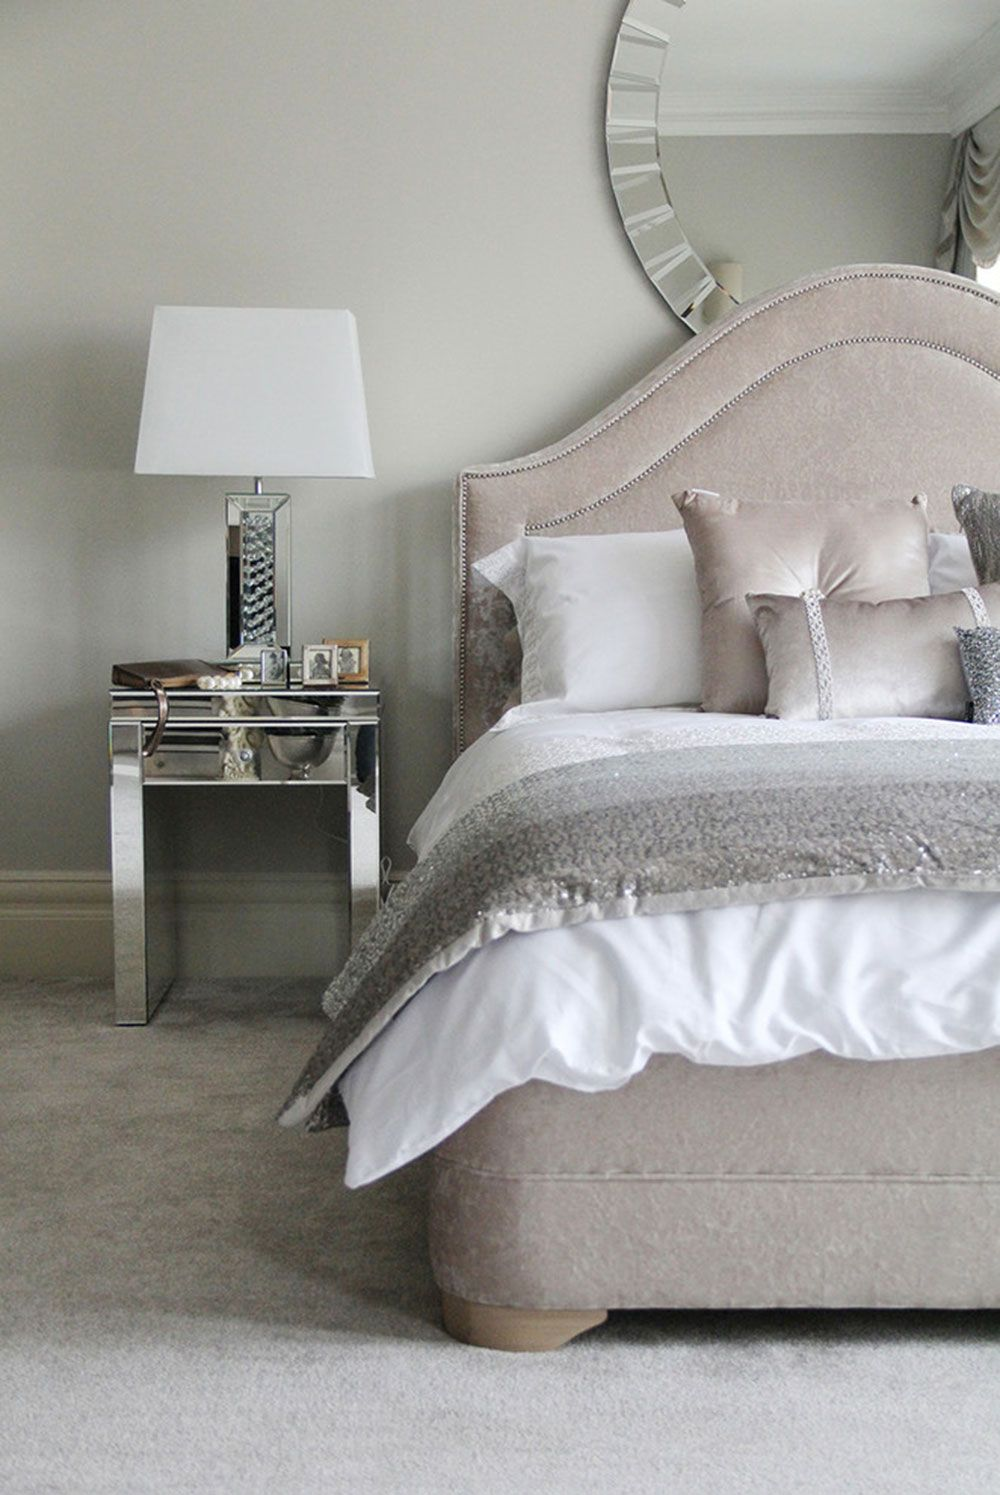 Small Bedside Table Ideas: Cool Bedside Table Ideas To Try In Your Bedroom